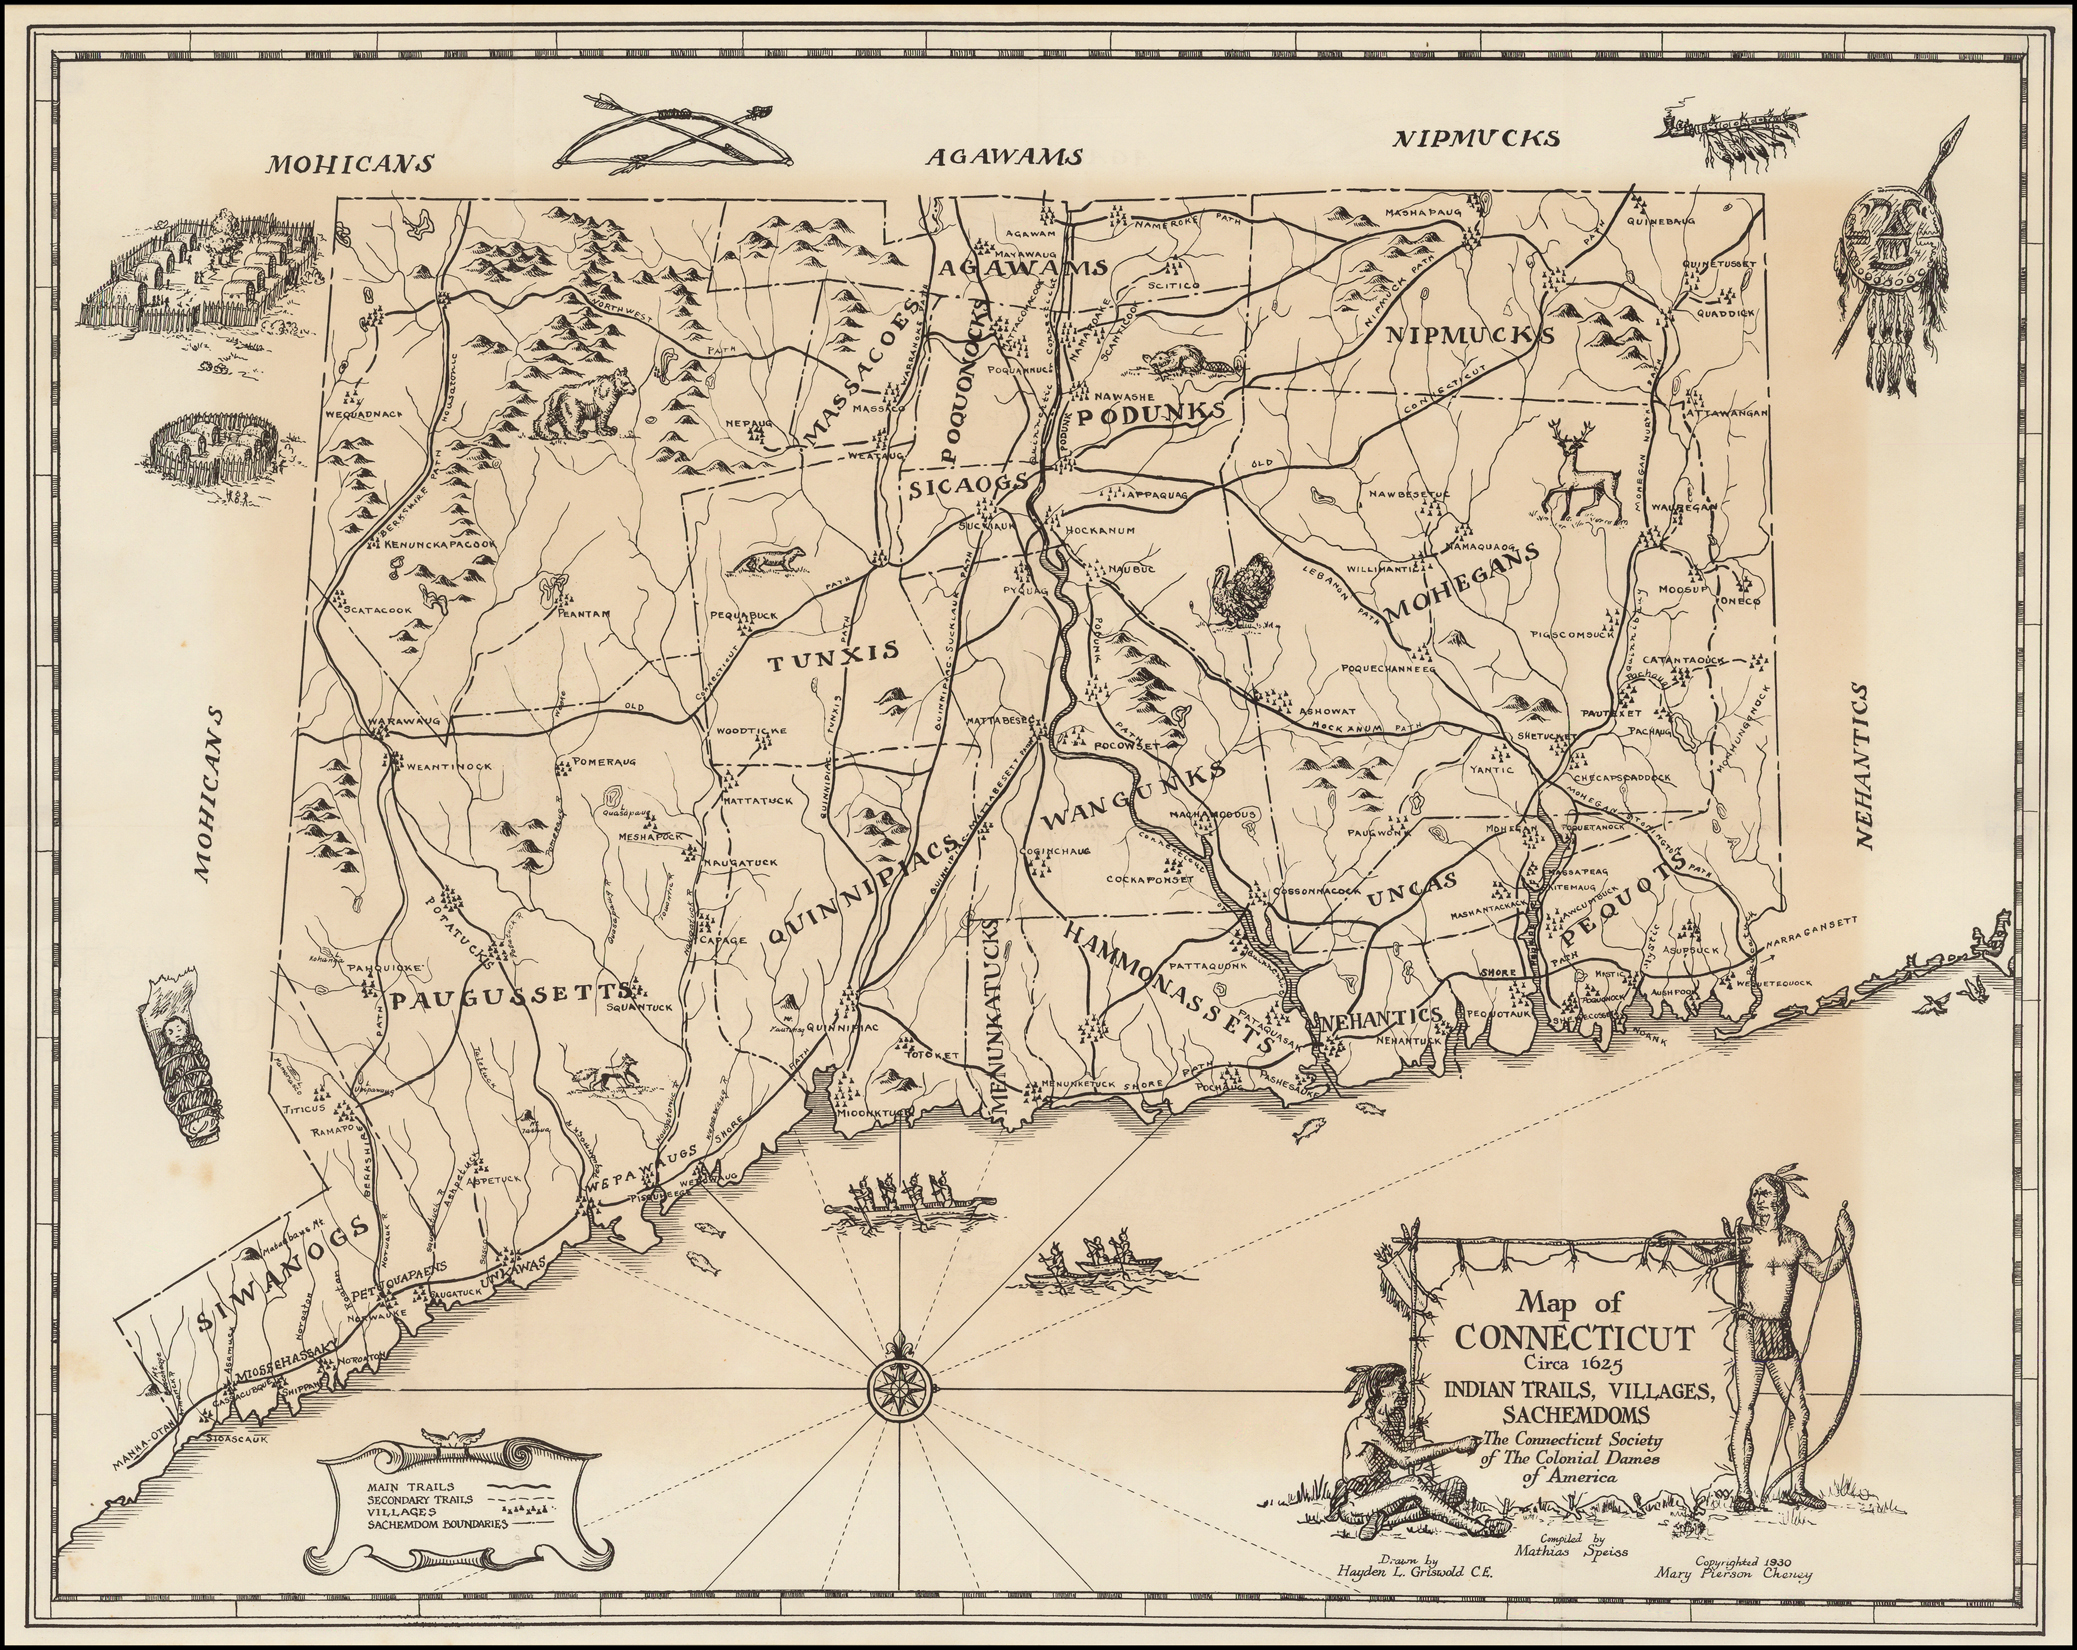 Zoomable Map Of Conn on map ct cities towns, map ri conn mass, cromwell conn, new haven conn, flag of conn, map united states constitution article 4, map for connecticut, newtown conn, hartford conn, us map conn, bristol conn, mystic conn, greenwich conn, state of conn, stamford conn,